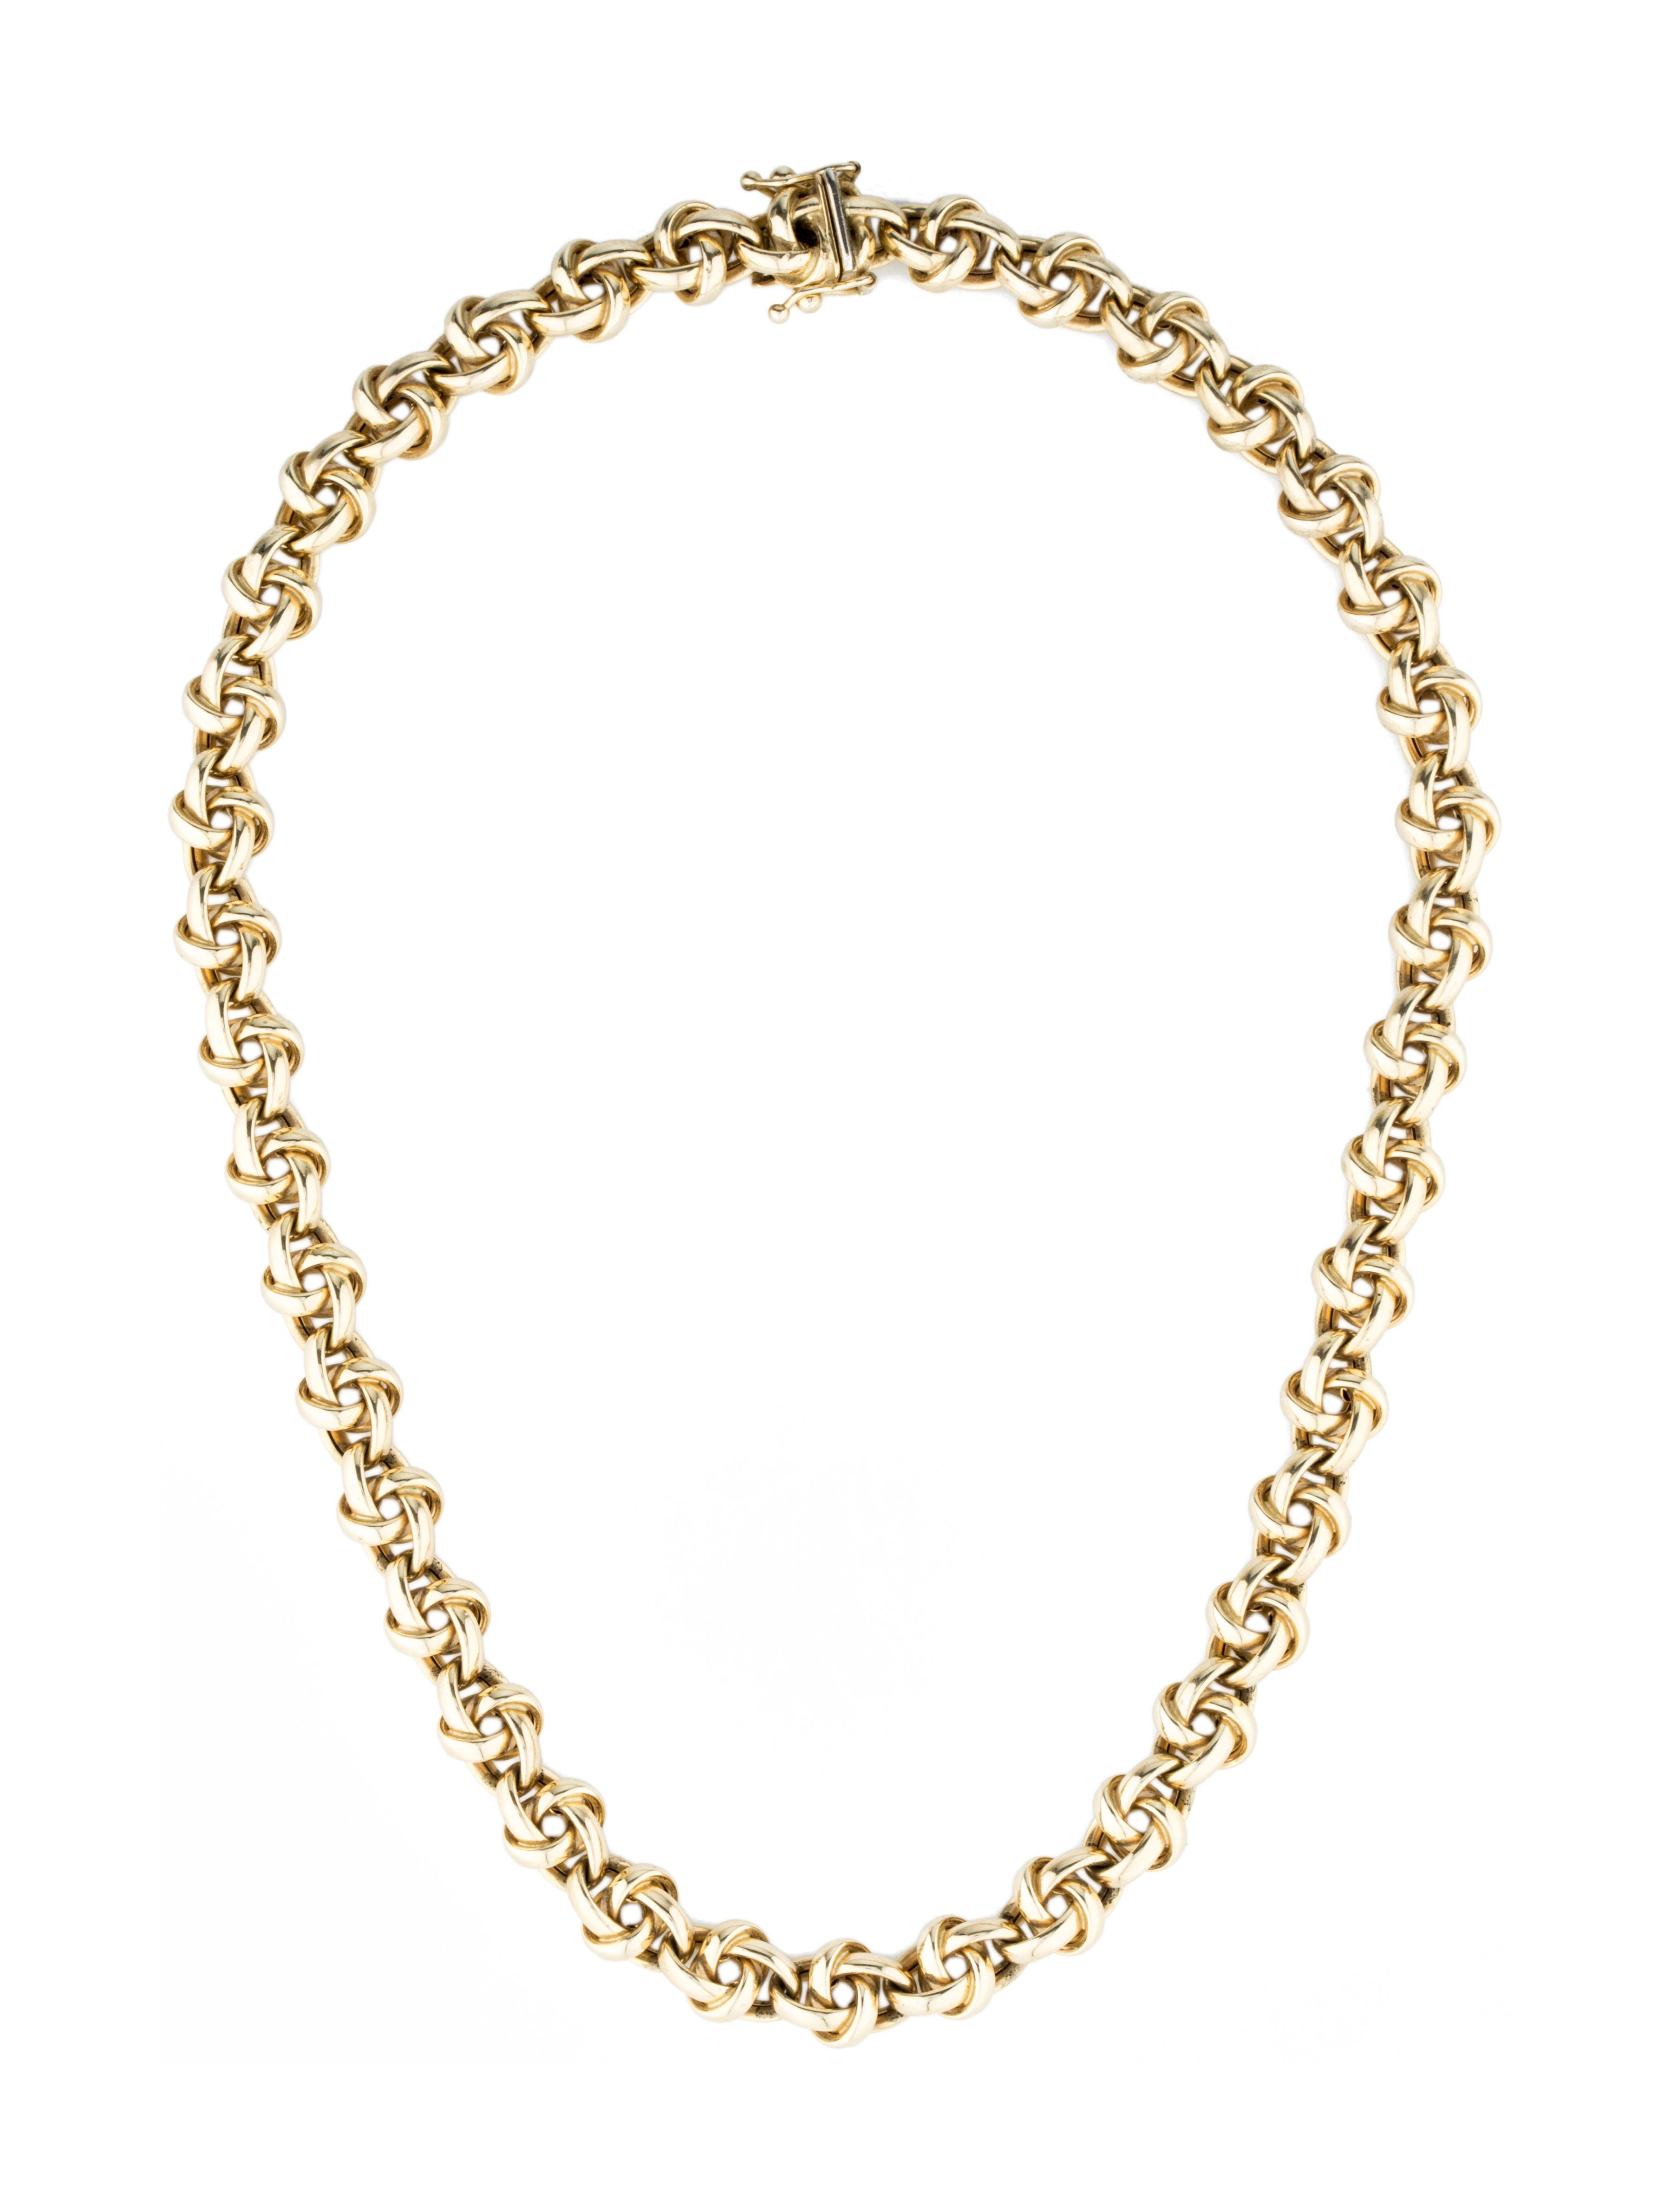 K gold chain necklace jewelry organizer pinterest gold